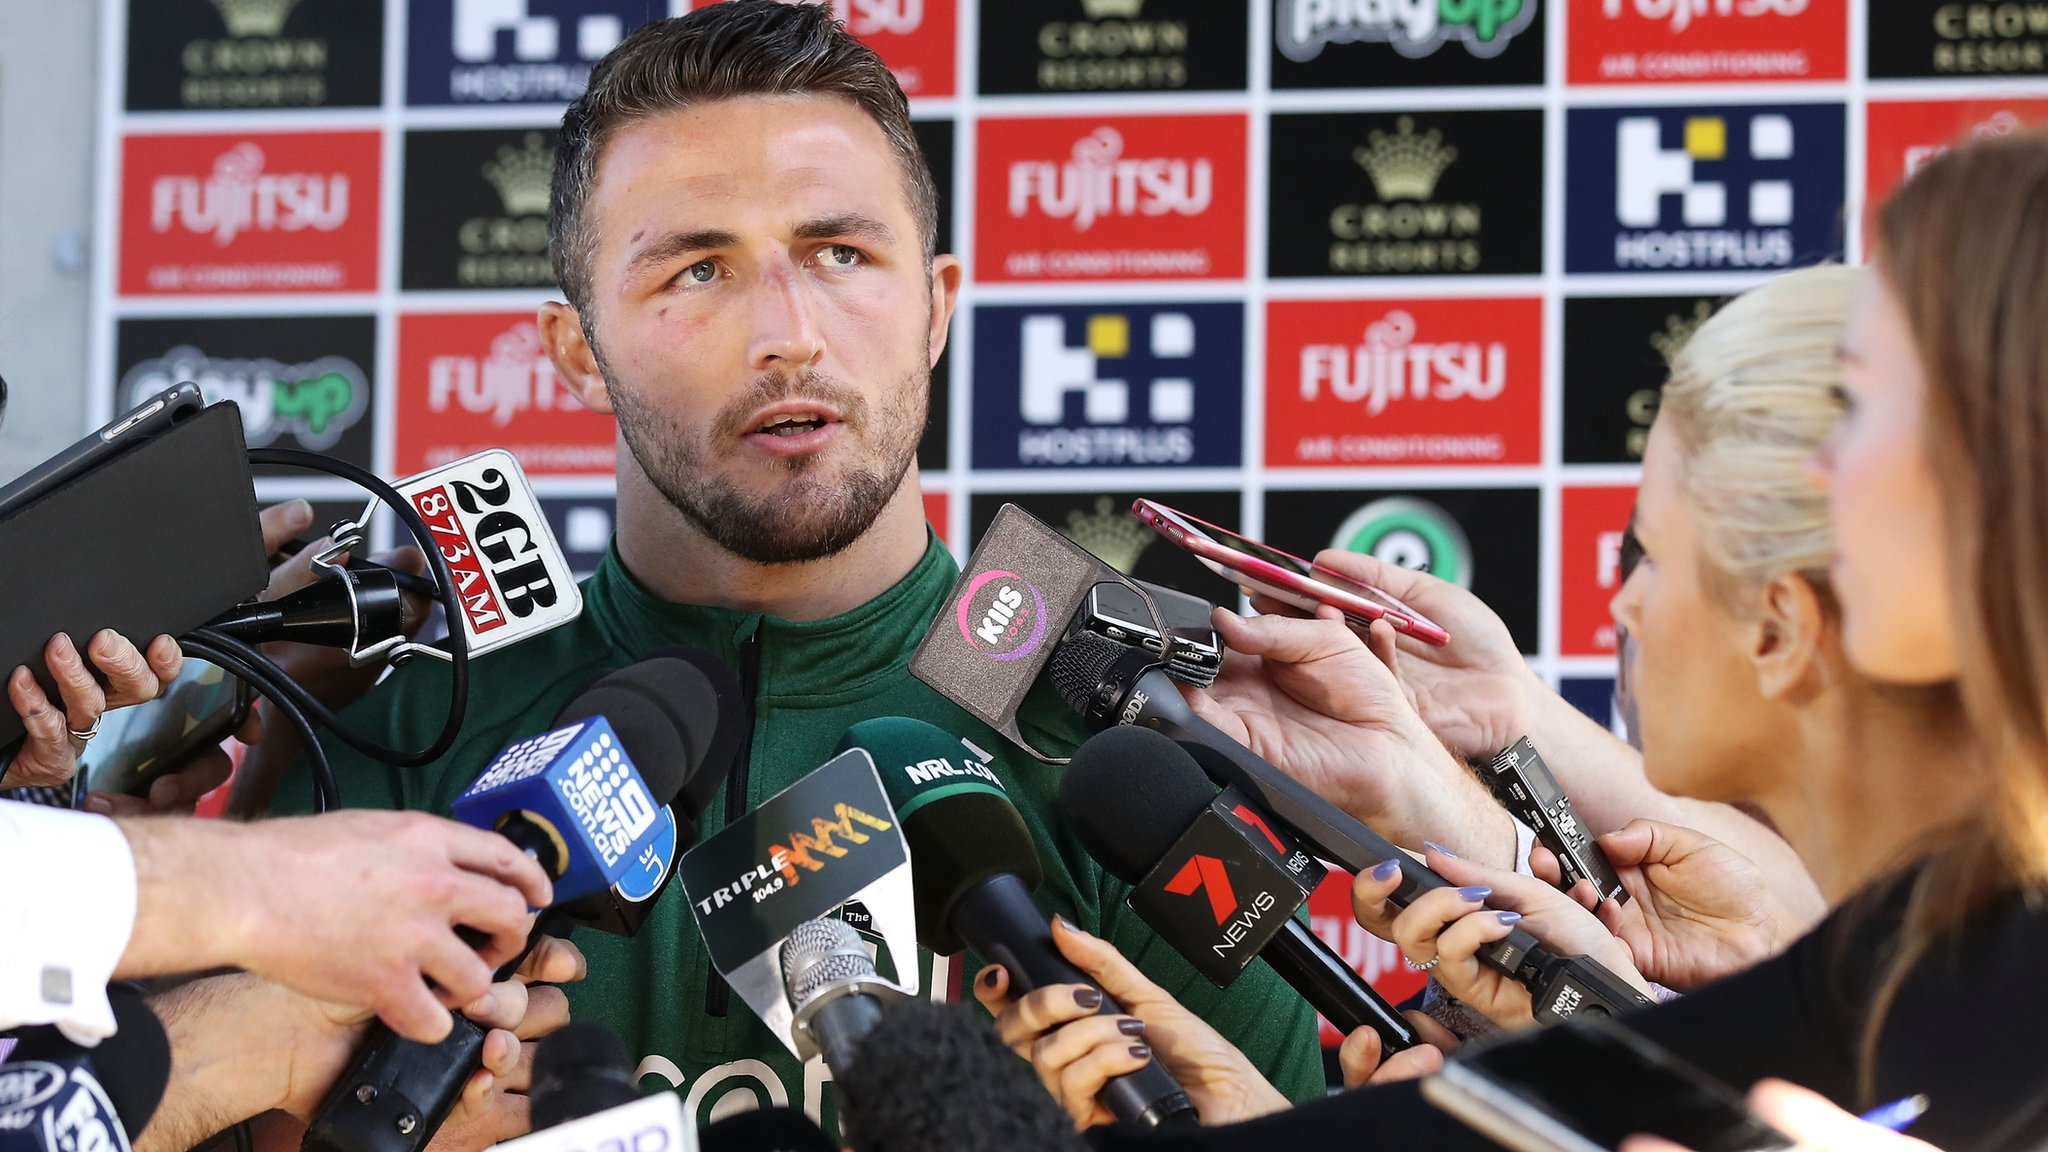 South Sydney's Burgess addresses 'sexting' claims